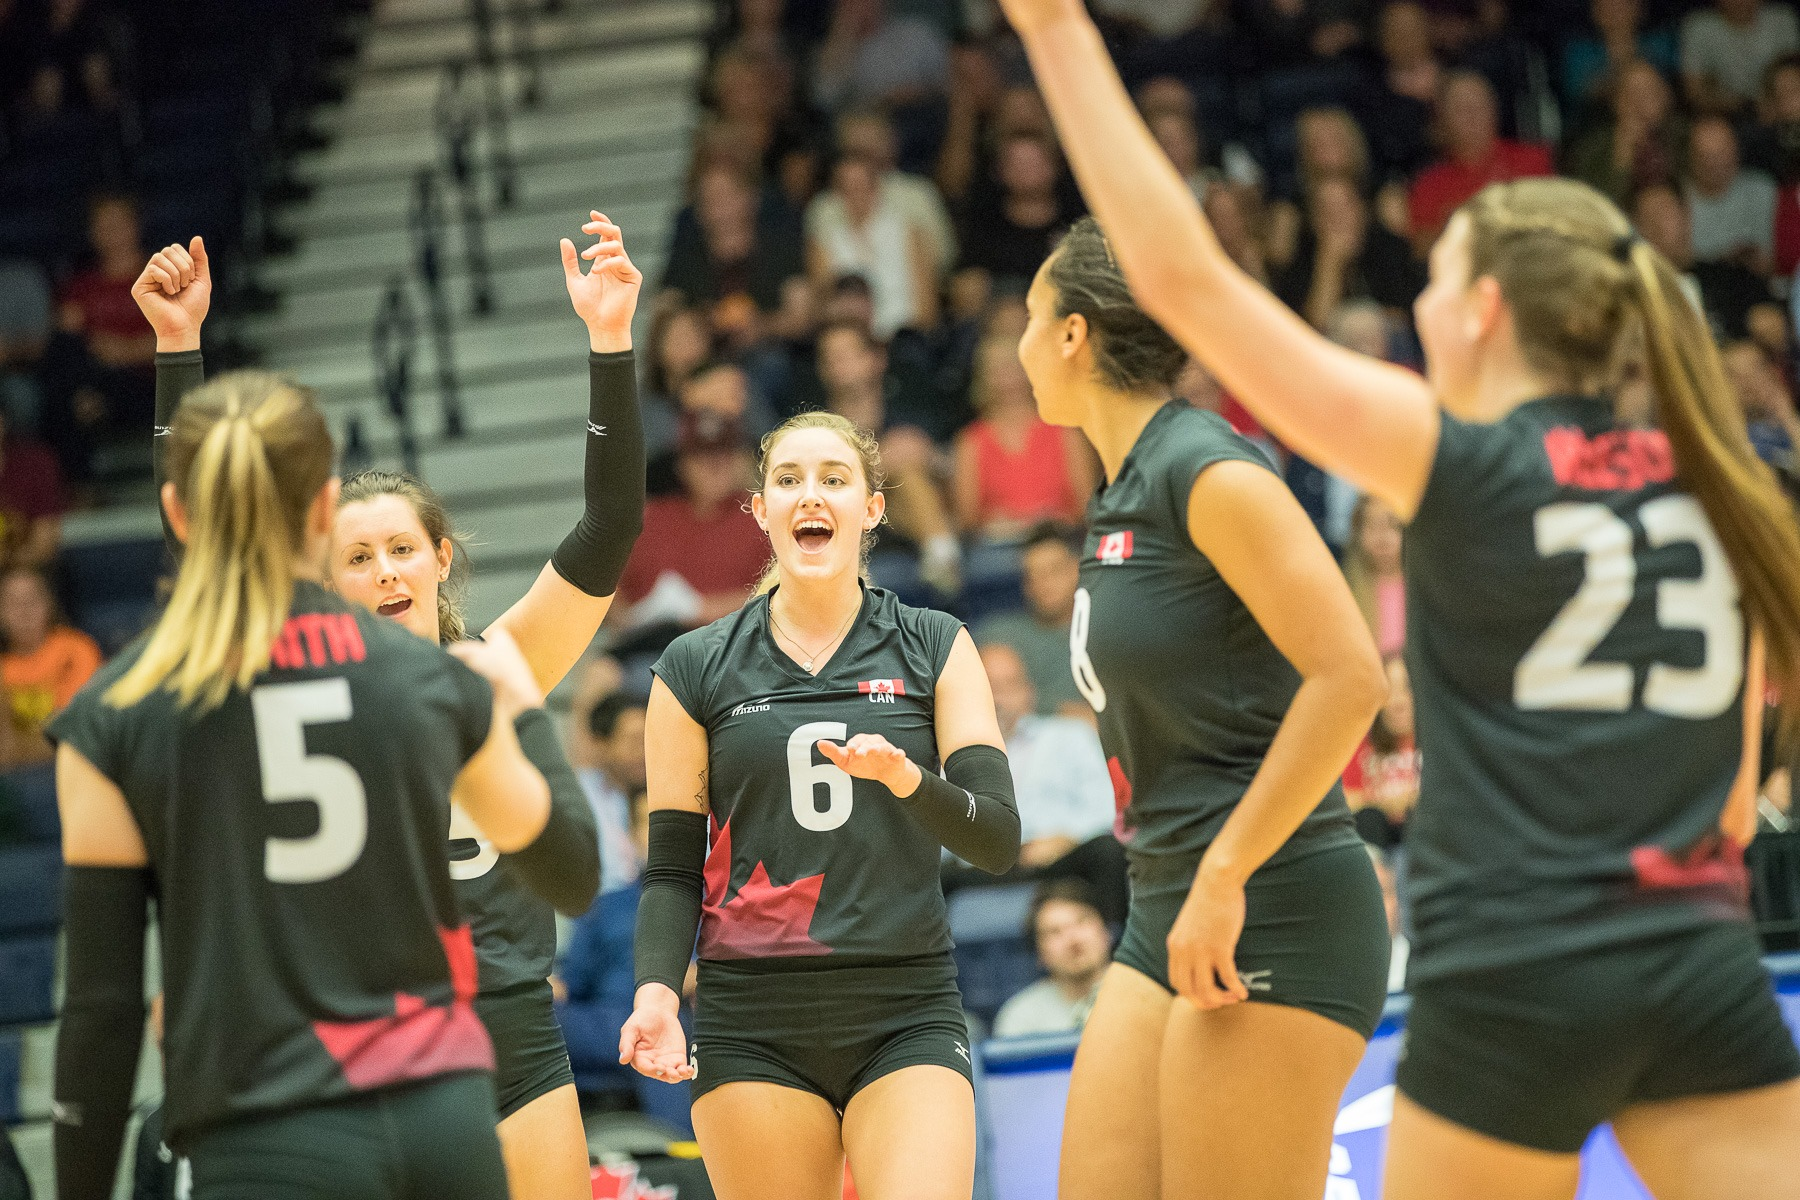 Smith, Canada's volleyball team win opener at worlds qualifier